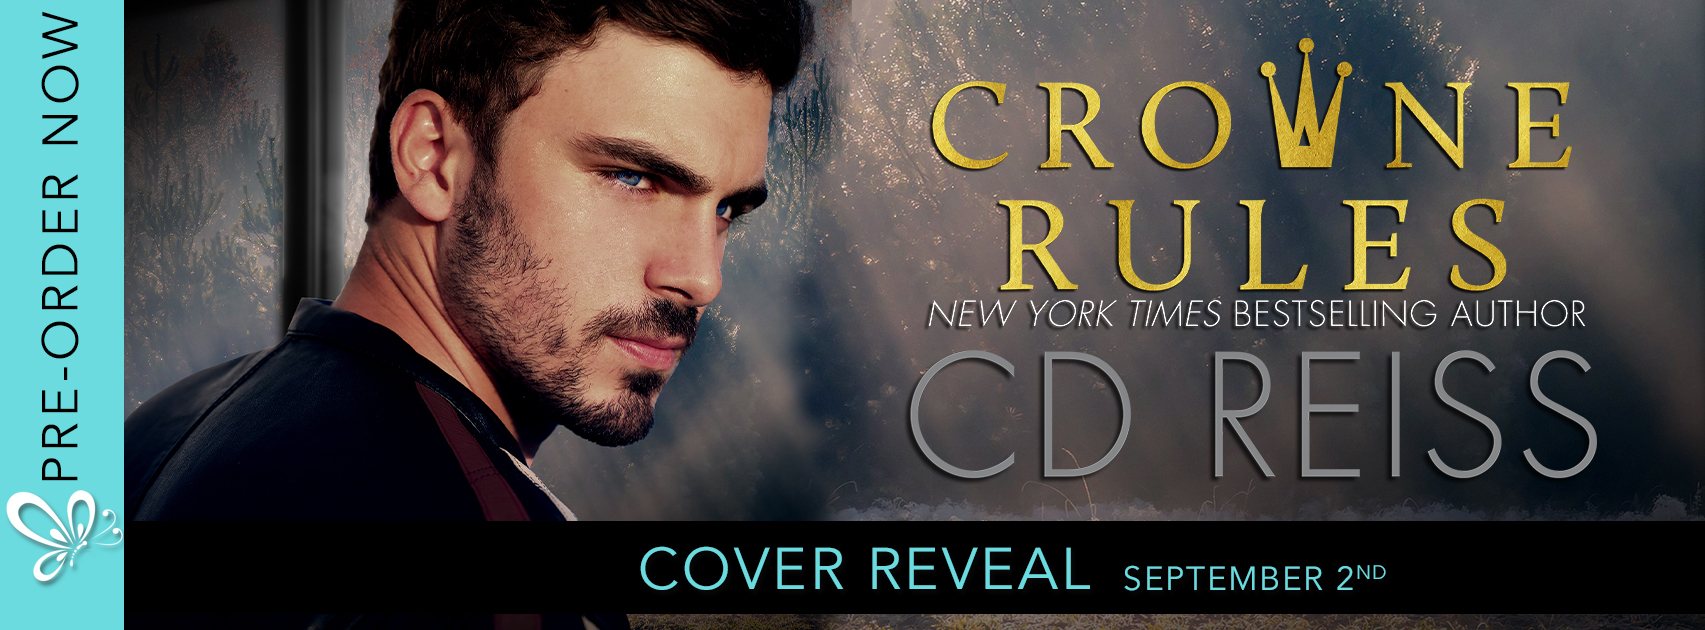 Crowne Rules - CR banner